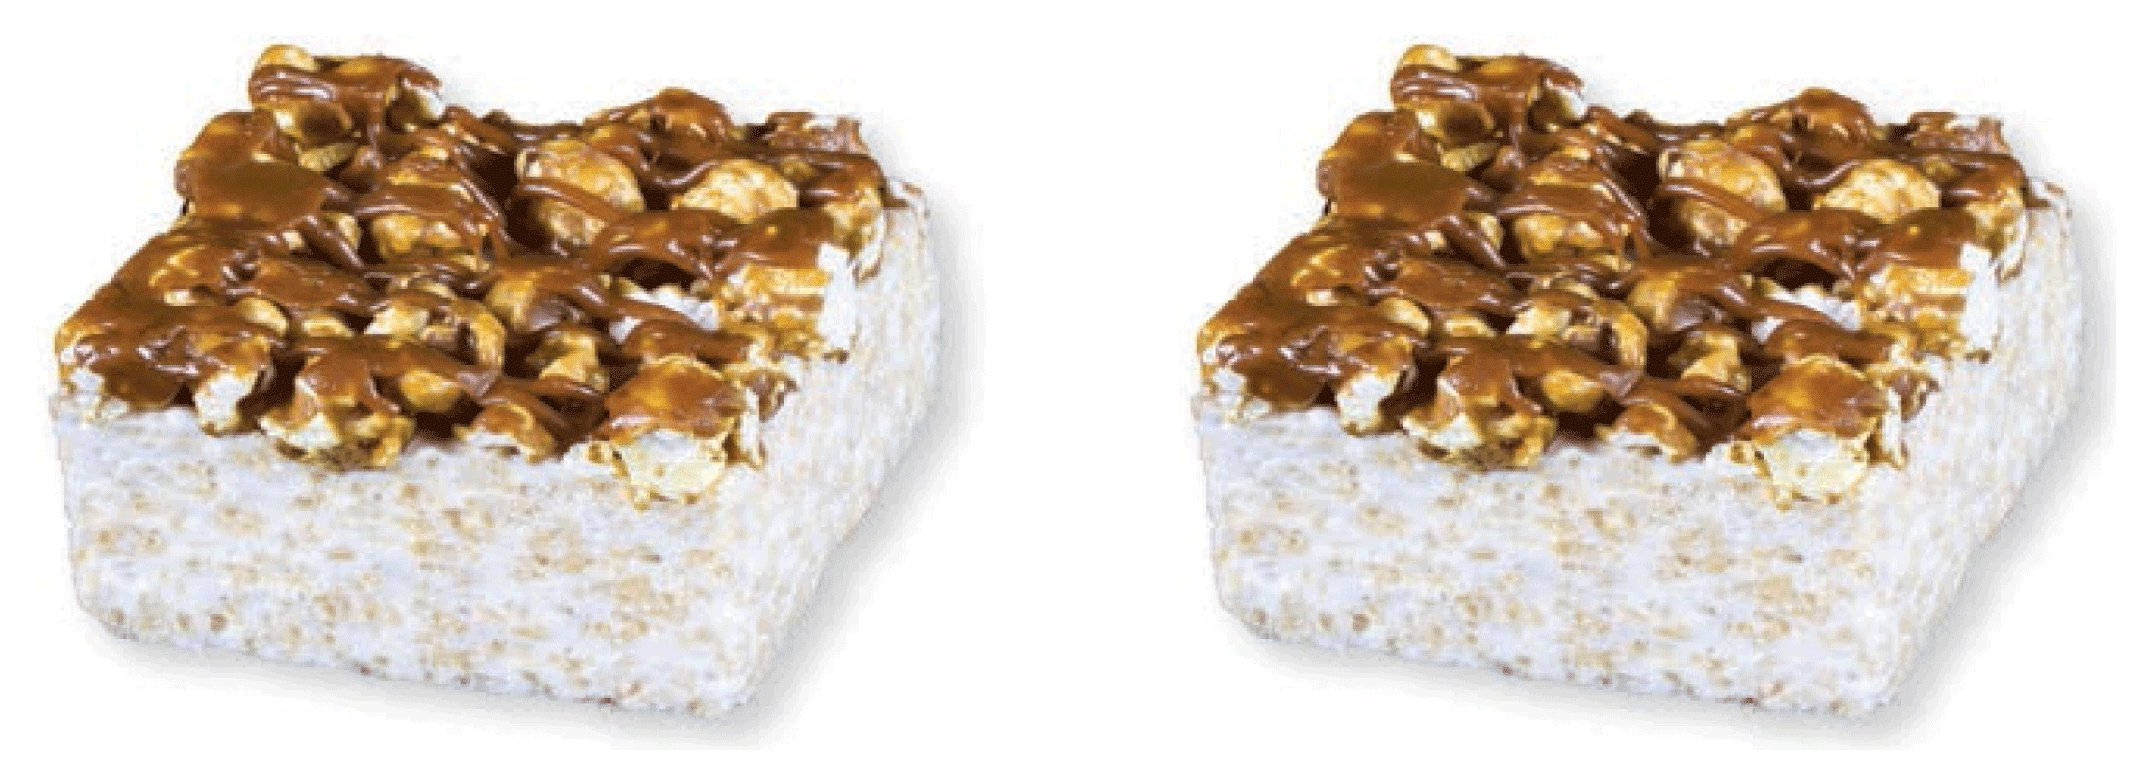 The Crispery Marshmallow Cake, Popcorn Crunch, 2 PACK 6 Ounce Each by The Crispery